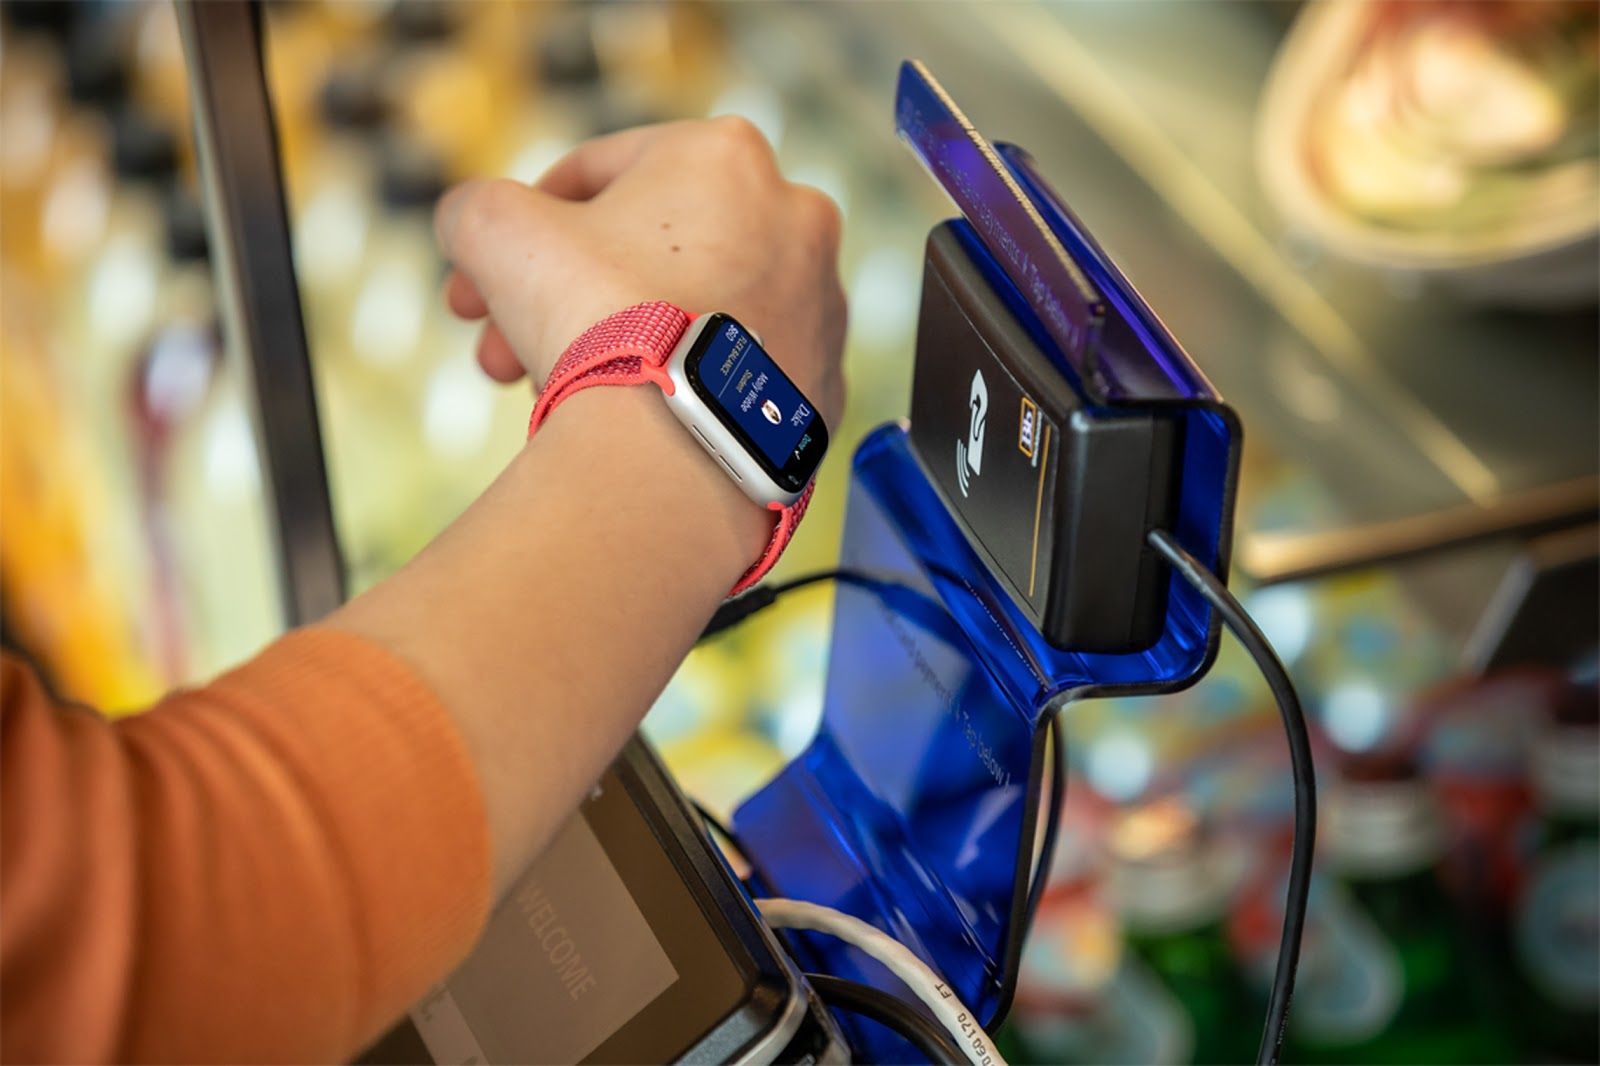 Contactless Technology Goes Beyond Payments for Higher Ed - Contactless technology is hitting a new wave of adoption and offering new solutions that go beyond payments. Here's why the higher education industry should pay attention.